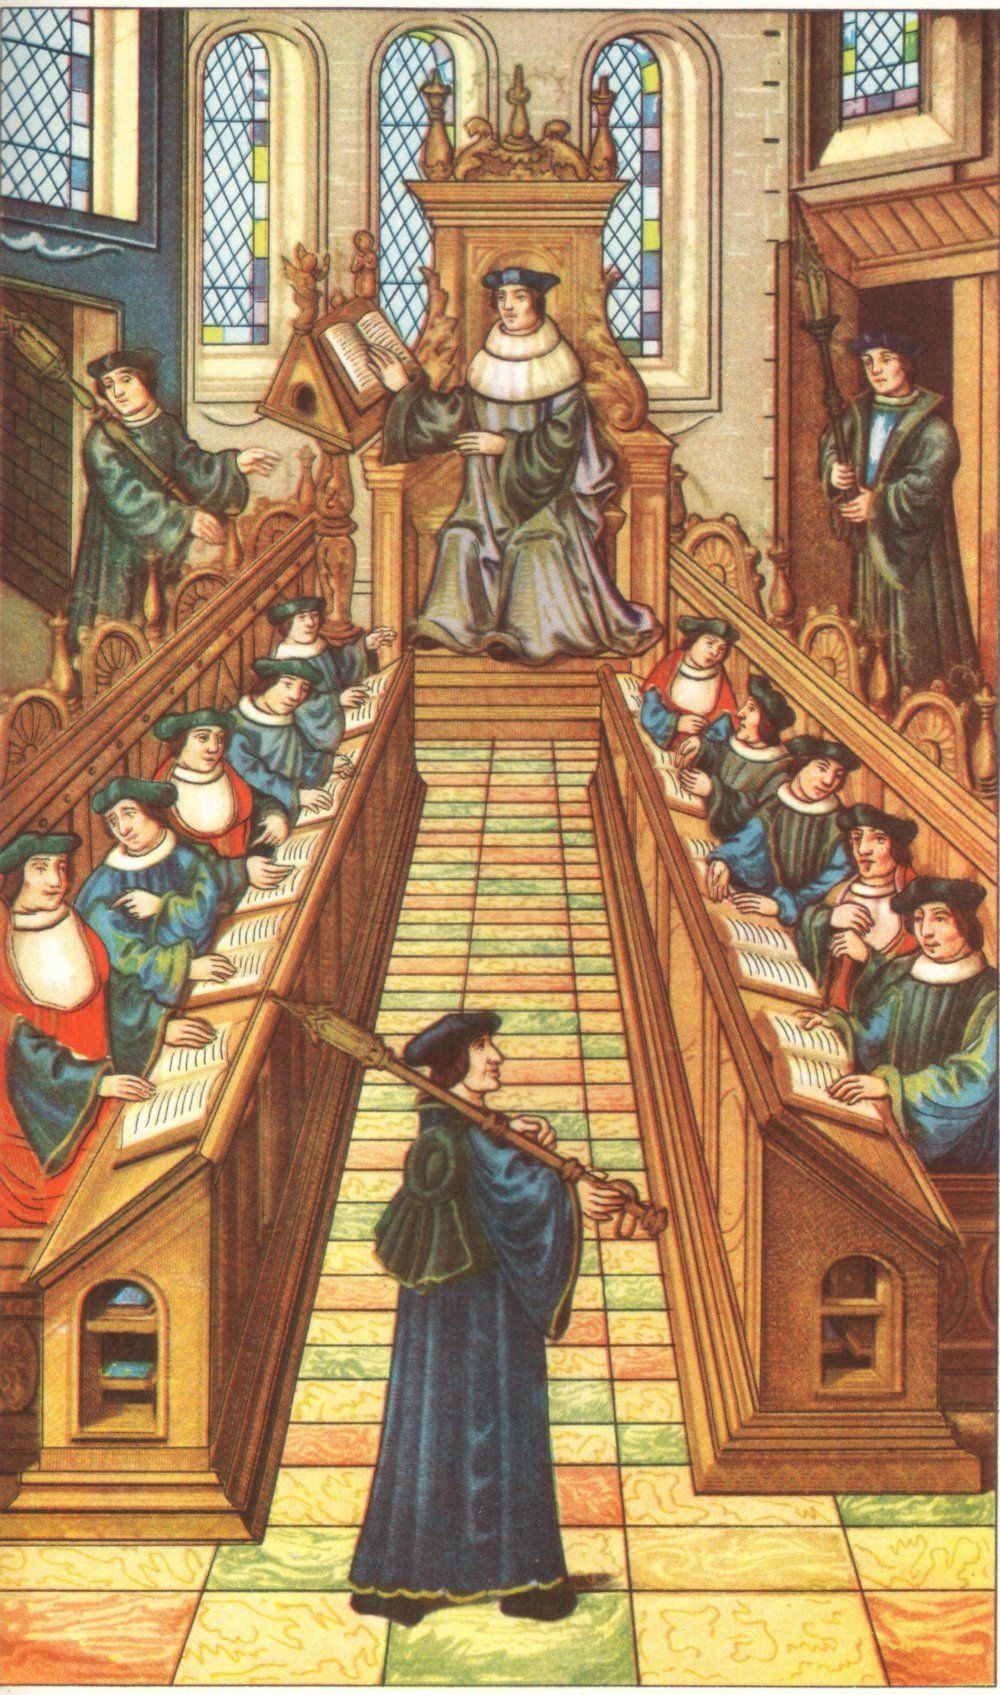 disciplining students in a medieval university - - Yahoo Image Search  Results